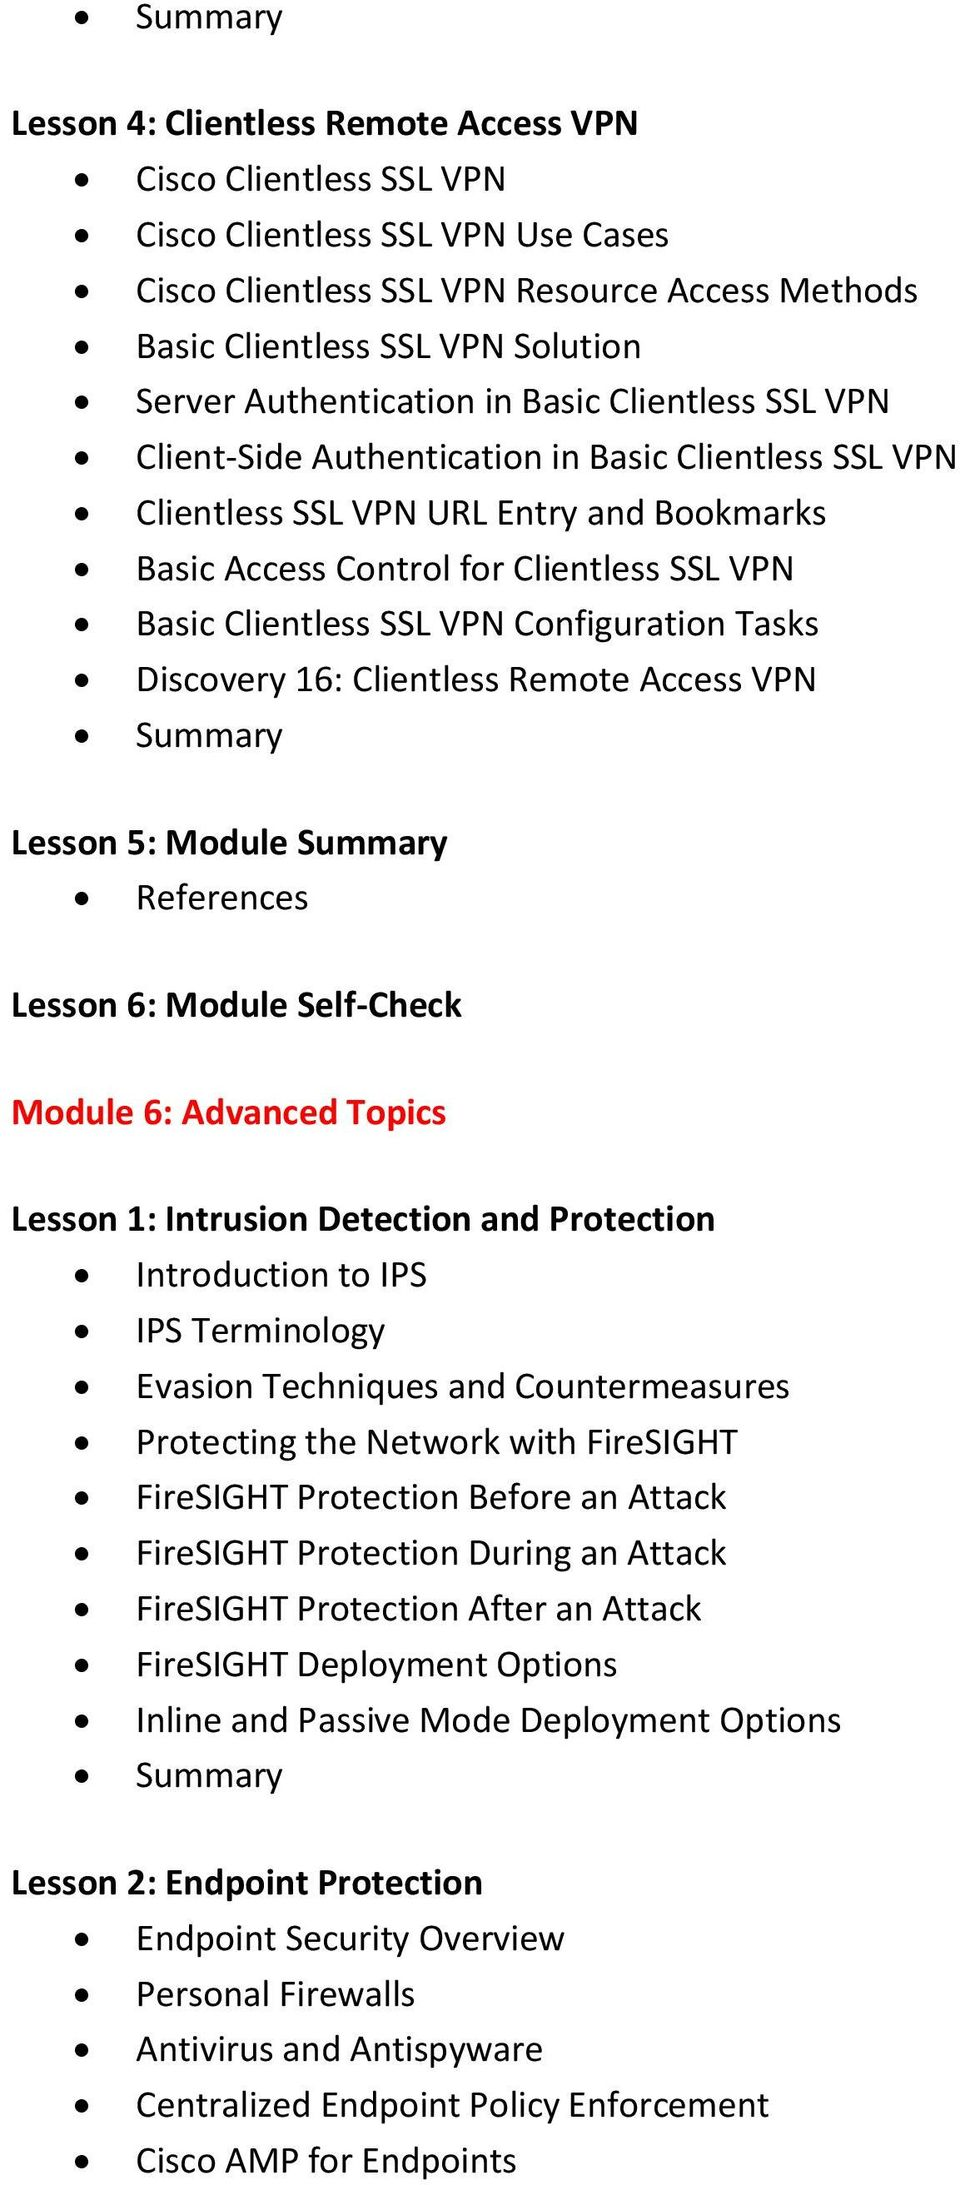 Clientless SSL VPN Configuration Tasks Discovery 16: Clientless Remote Access VPN Lesson 5: Module Lesson 6: Module Self-Check Module 6: Advanced Topics Lesson 1: Intrusion Detection and Protection